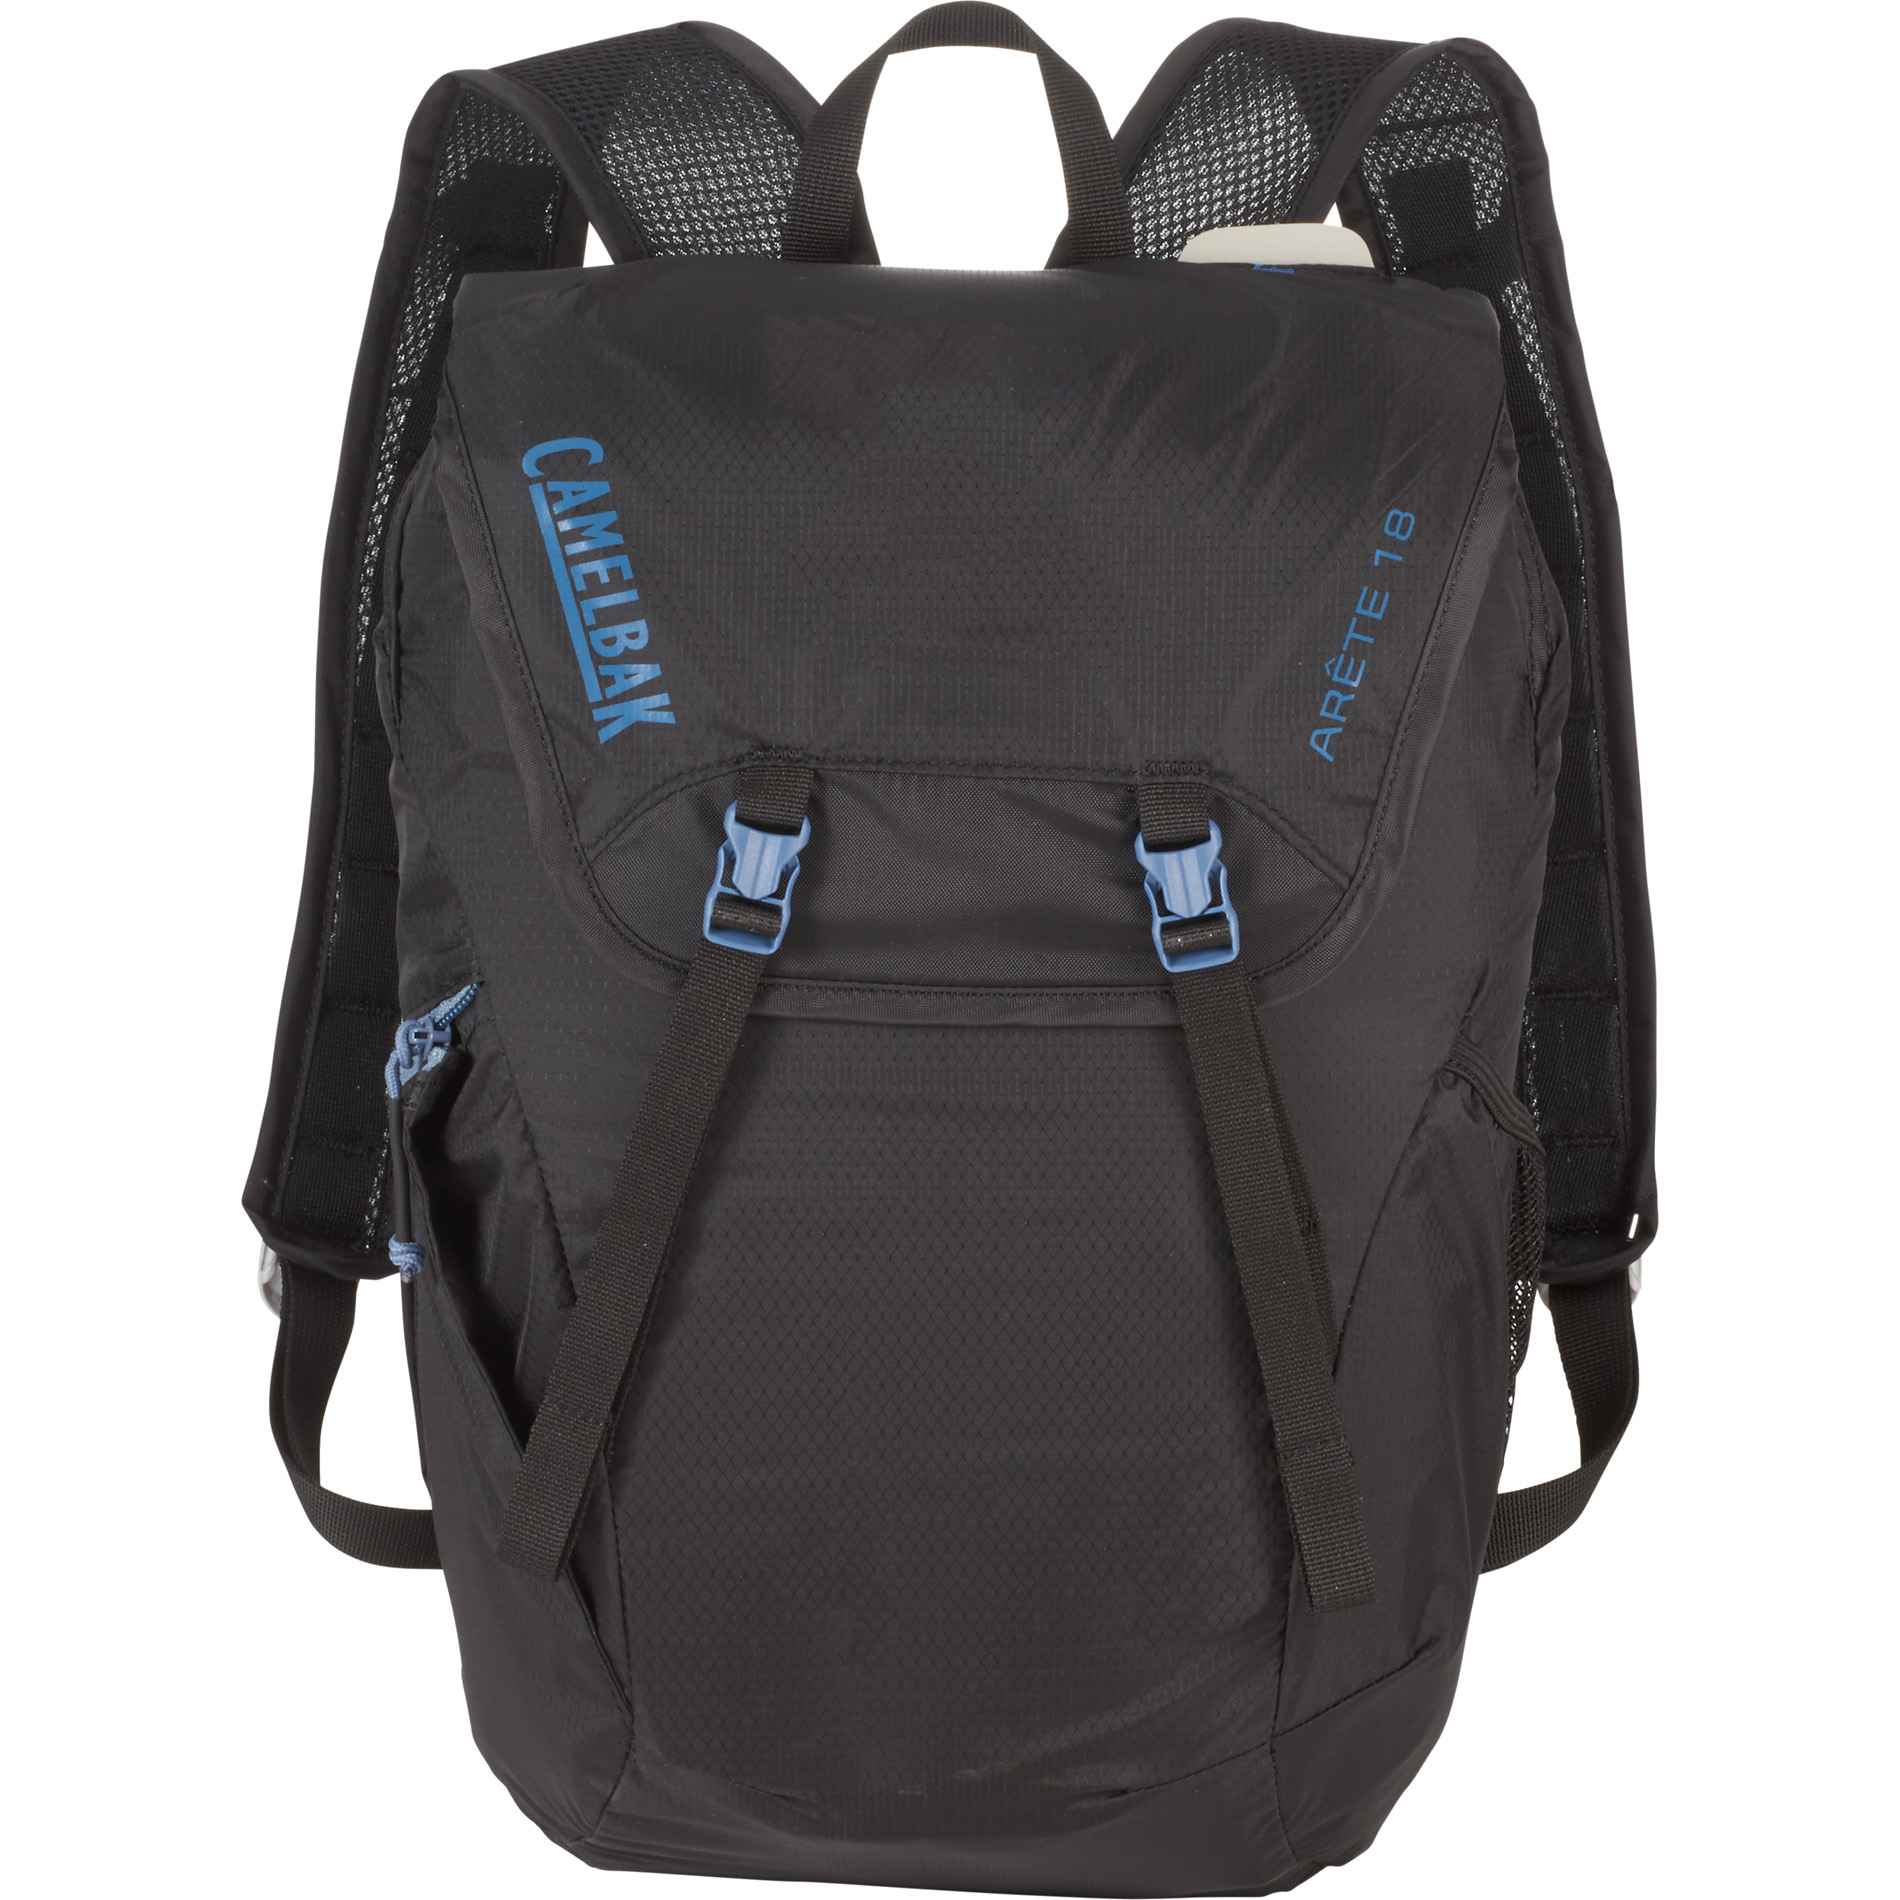 CamelBak 1627-51 - Arete 18L Backpack